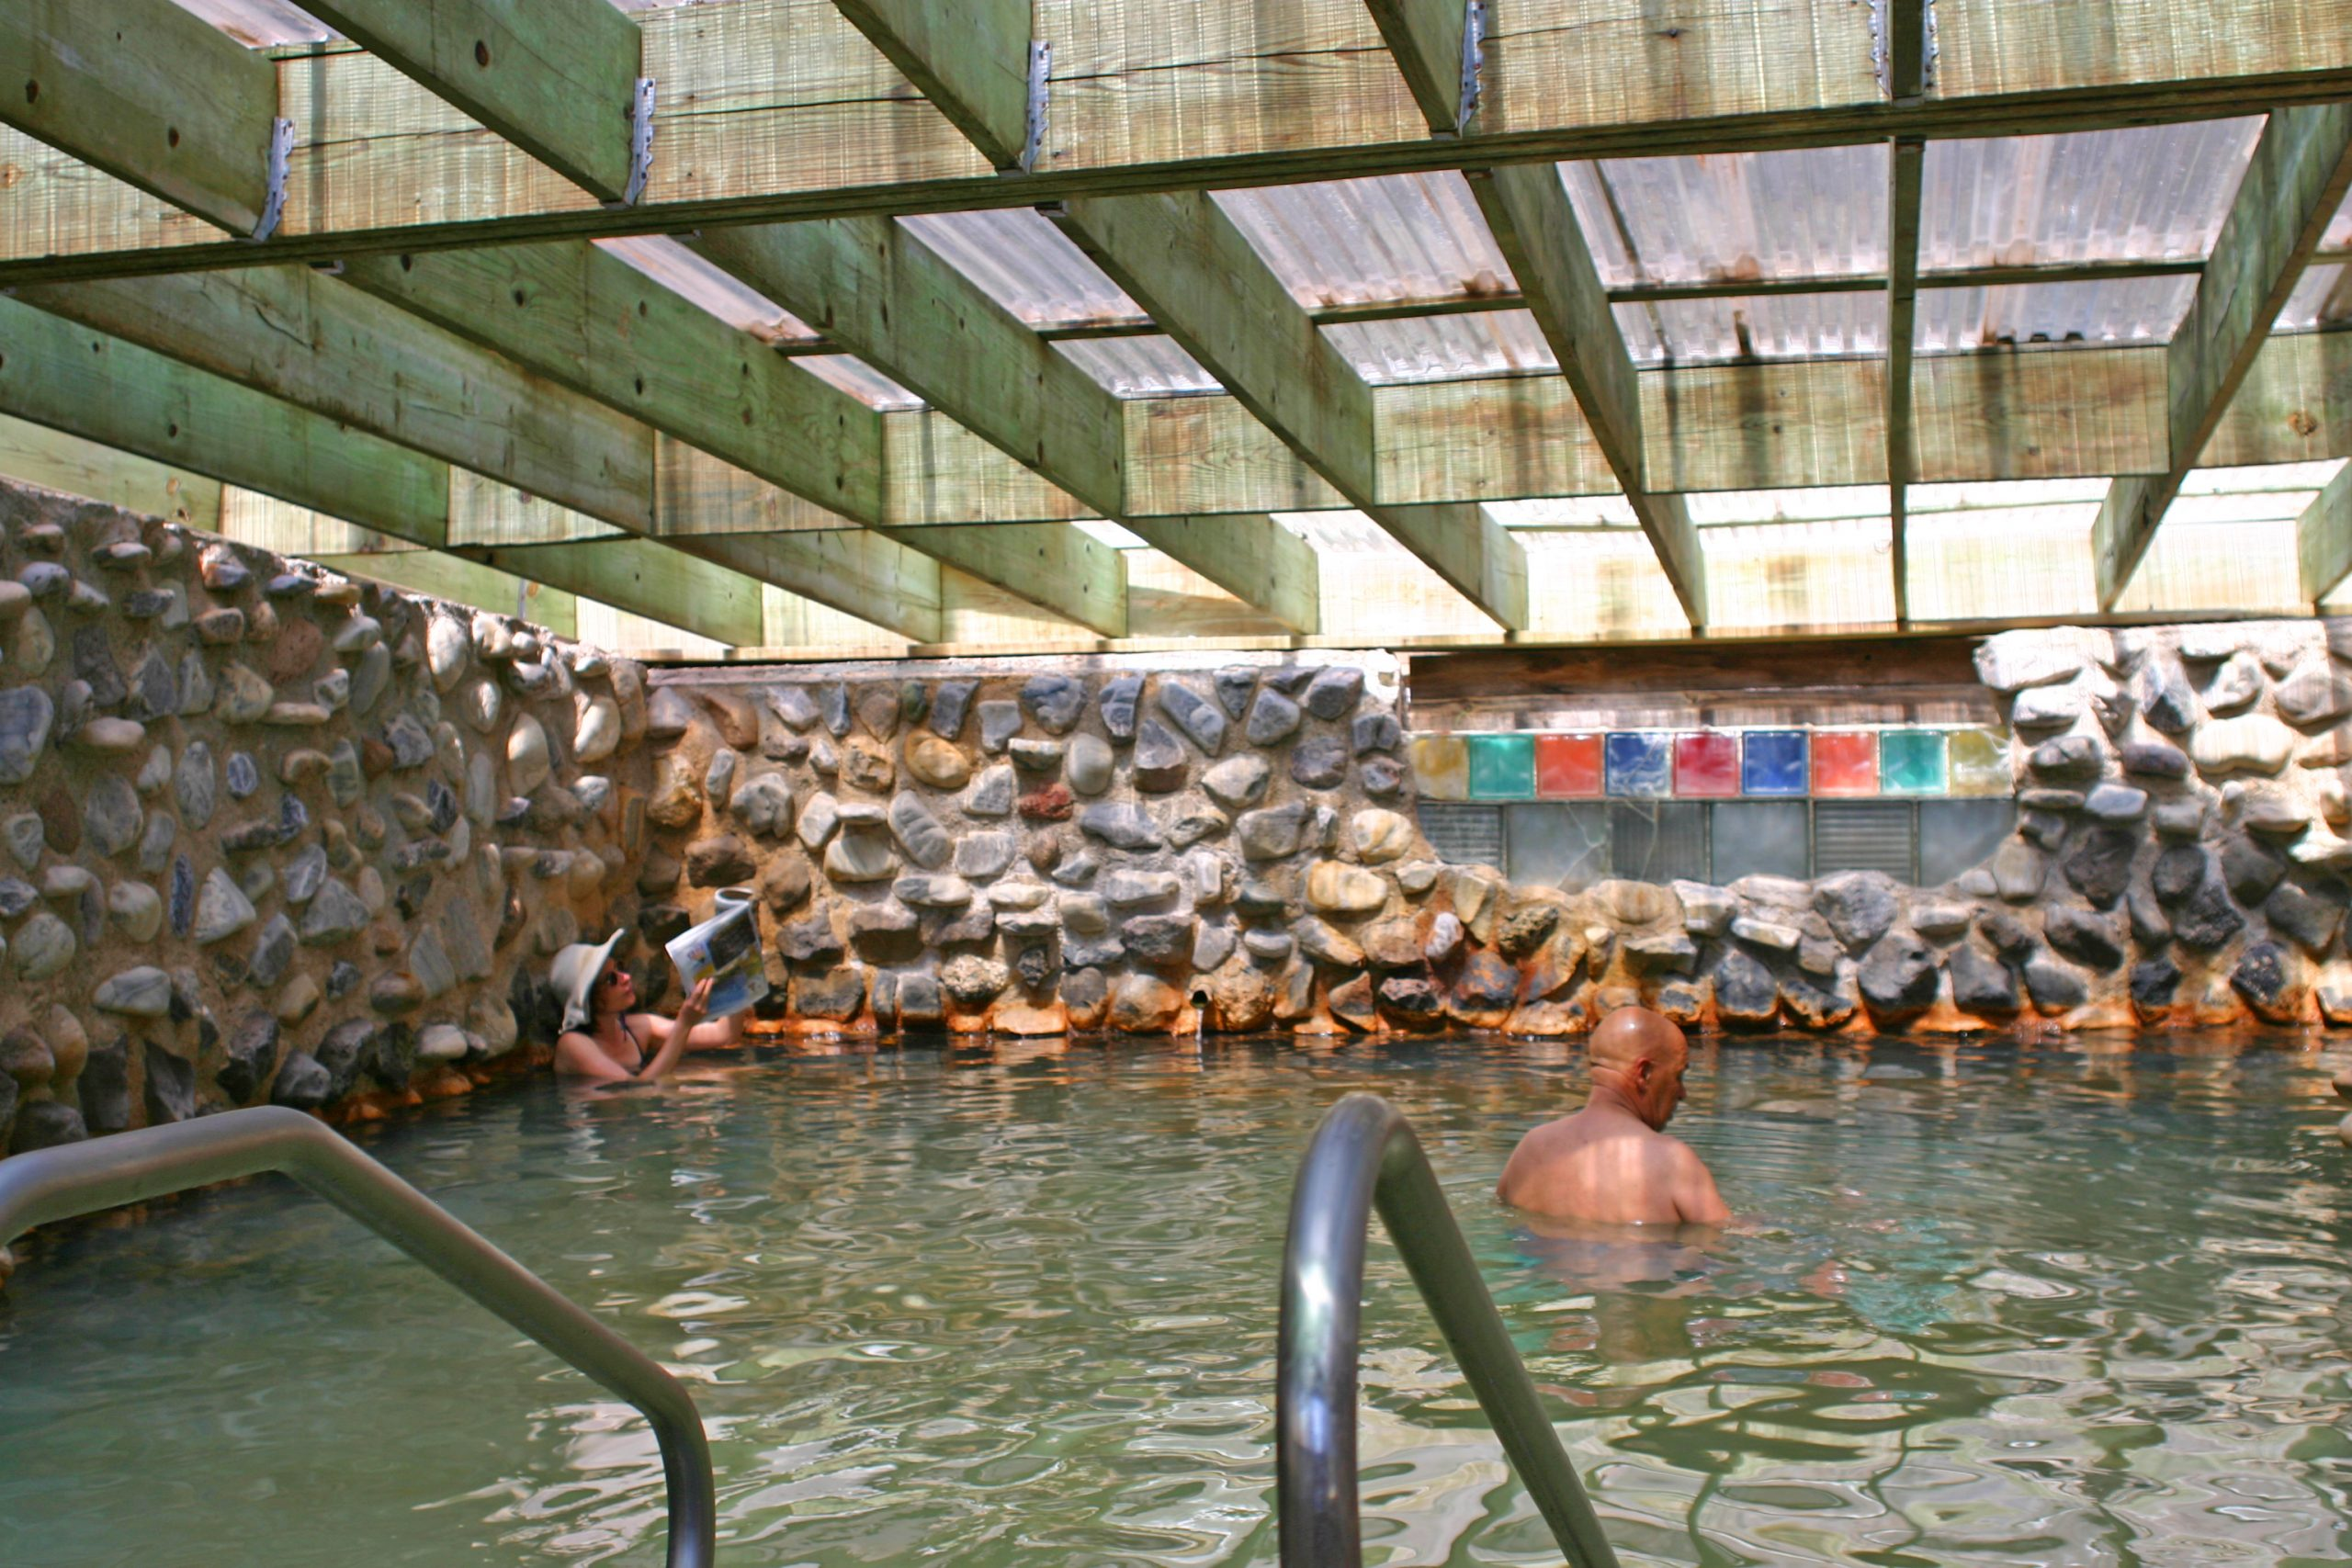 The soda springs pool at Ojo  is buoyant and covered by a greenhouse-style roof.